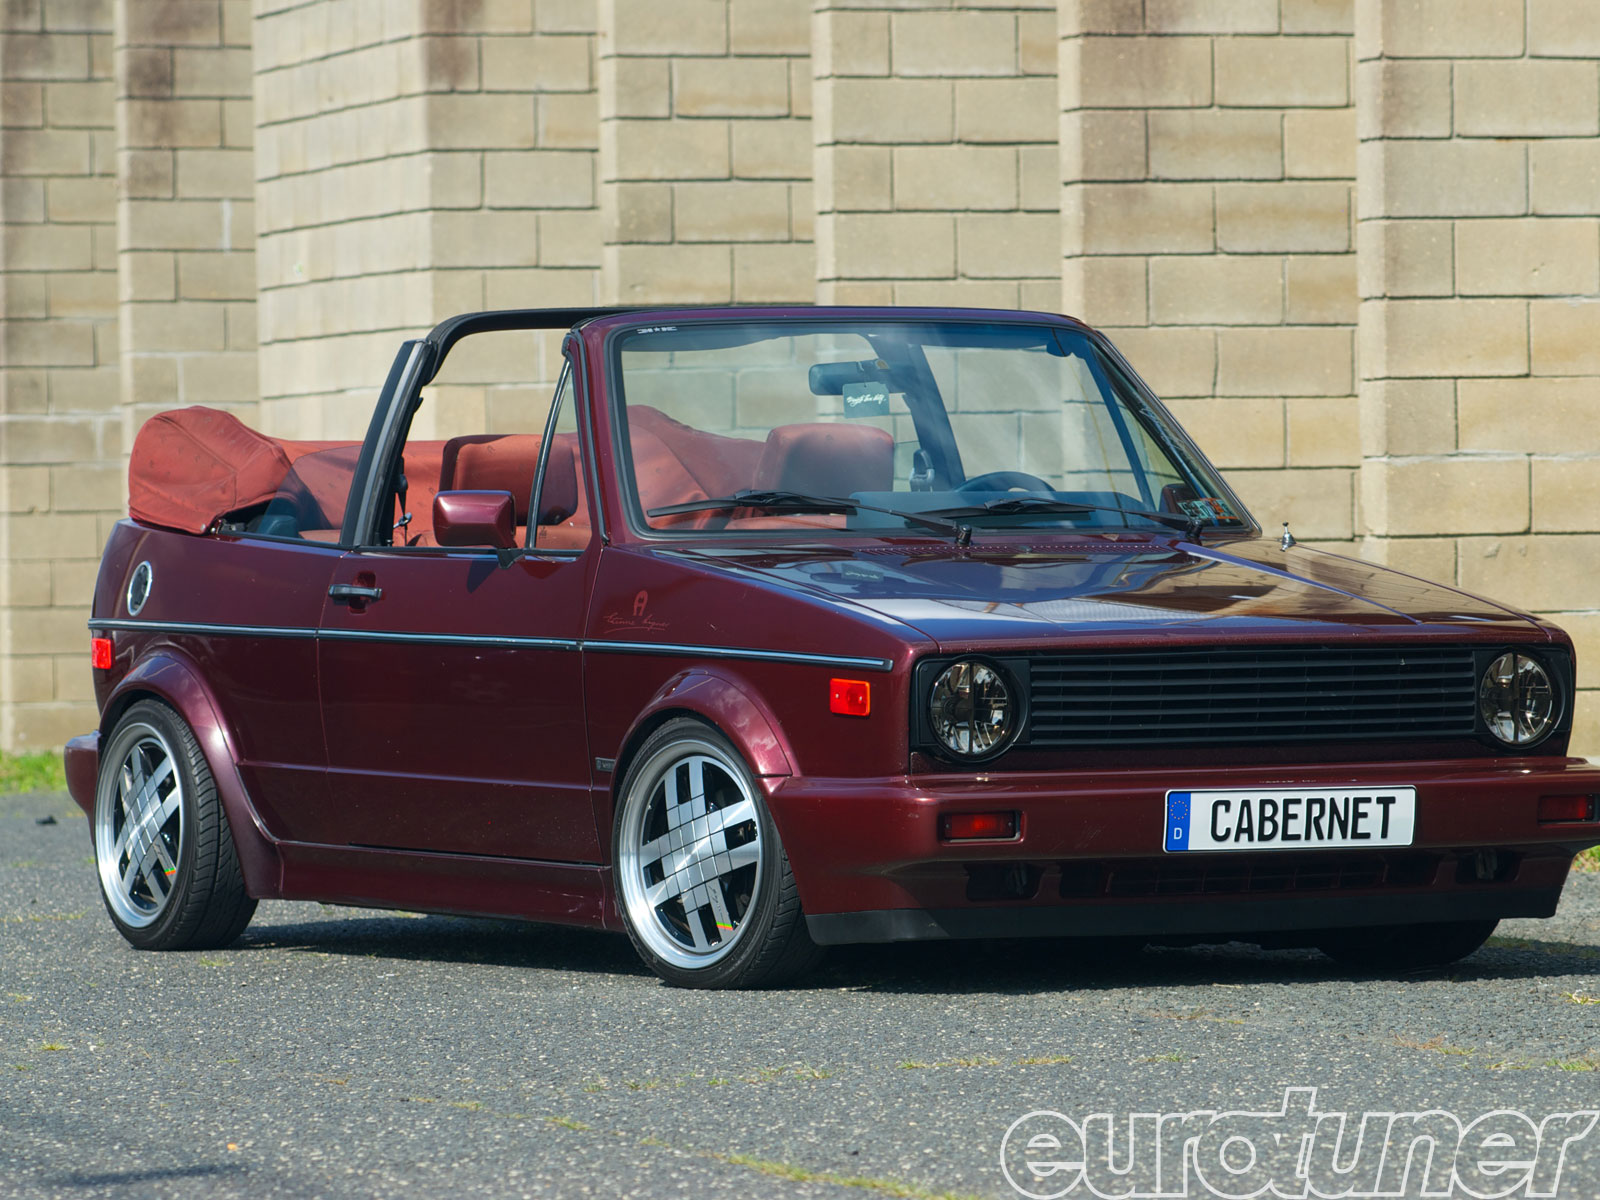 1991 Vw Cabriolet Etienne Aigner Edition Flirting With Trash Web Exclusive Eurotuner Magazine